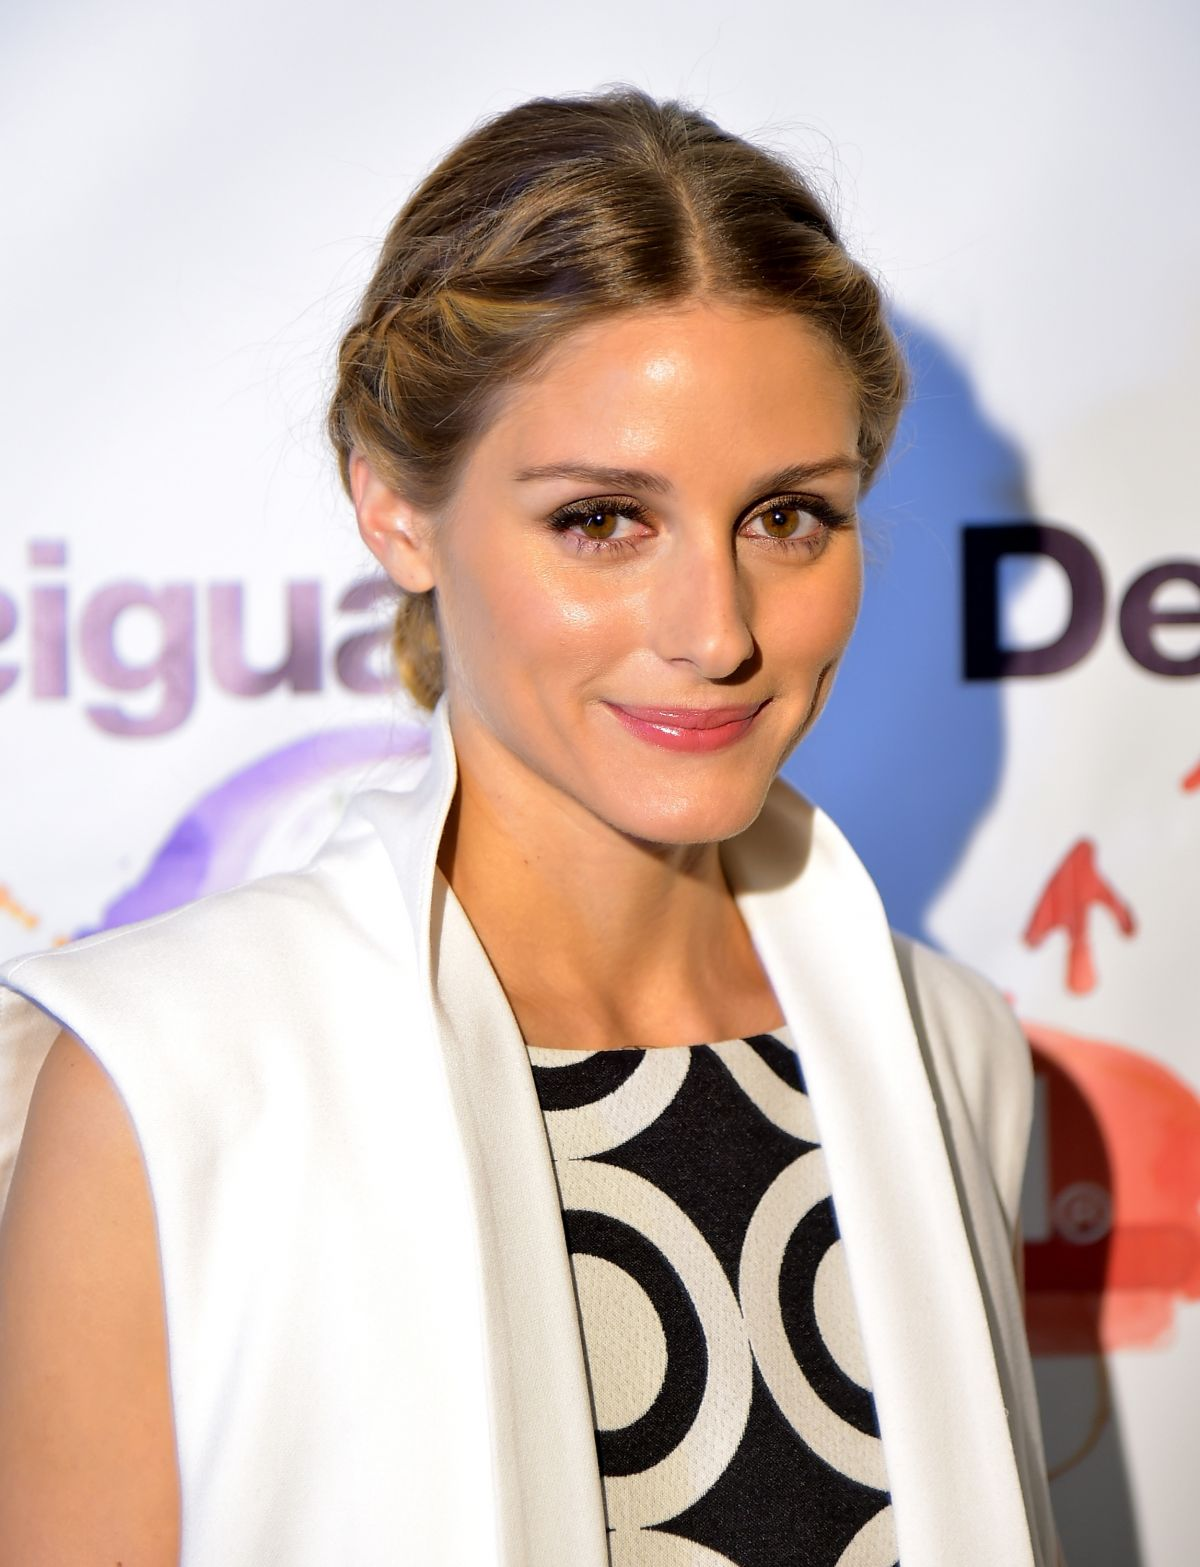 OLIVIA PALERMO at Desigual Fashion Show in New York